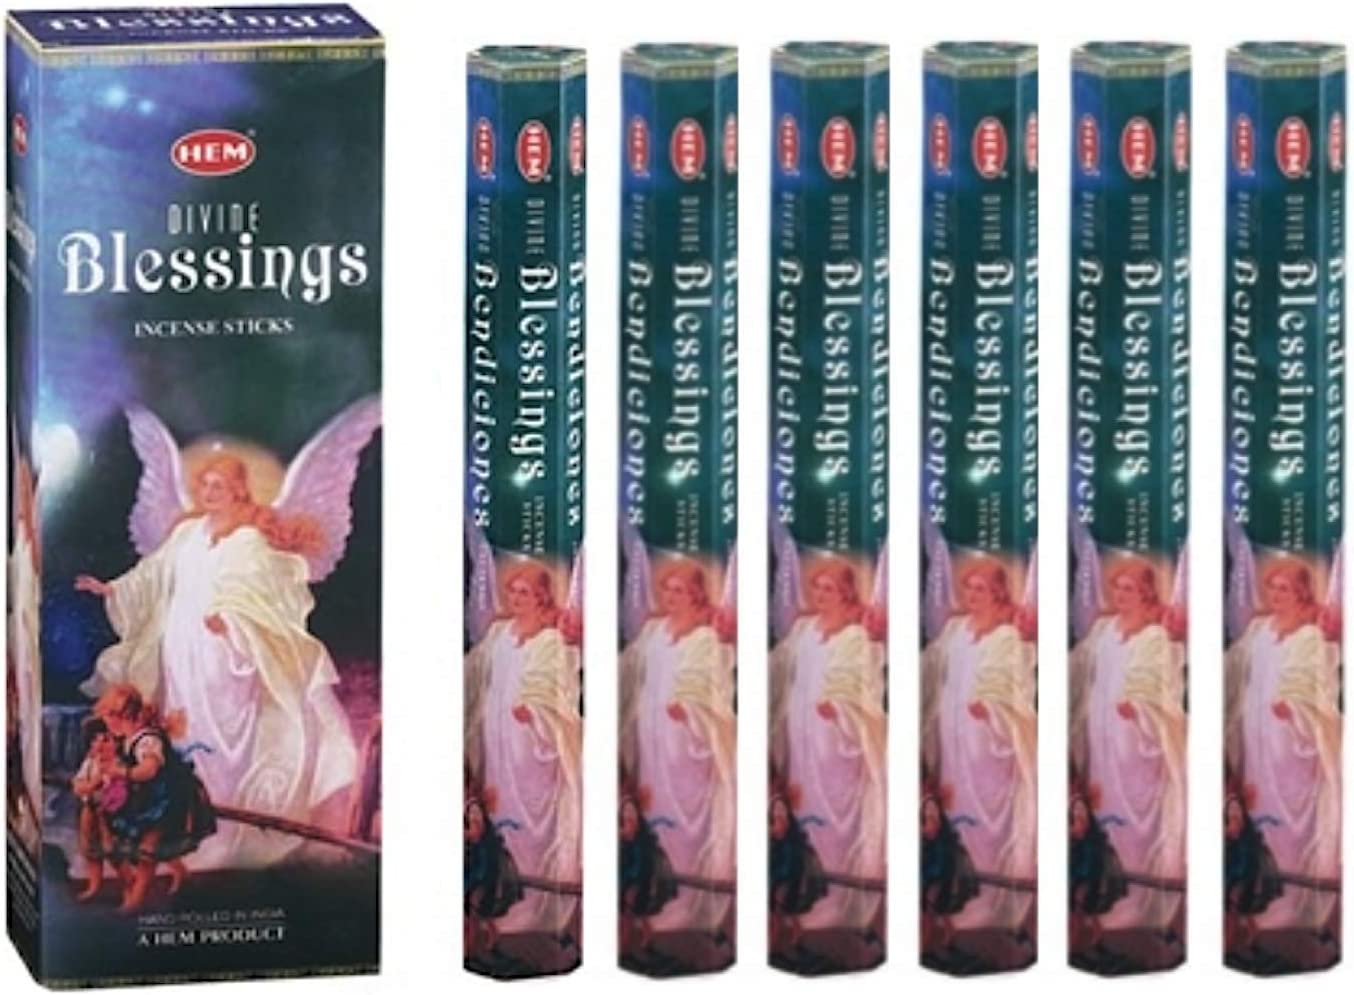 Divine Blessings - Box of Six 20 Stick Tubes - HEM Incense